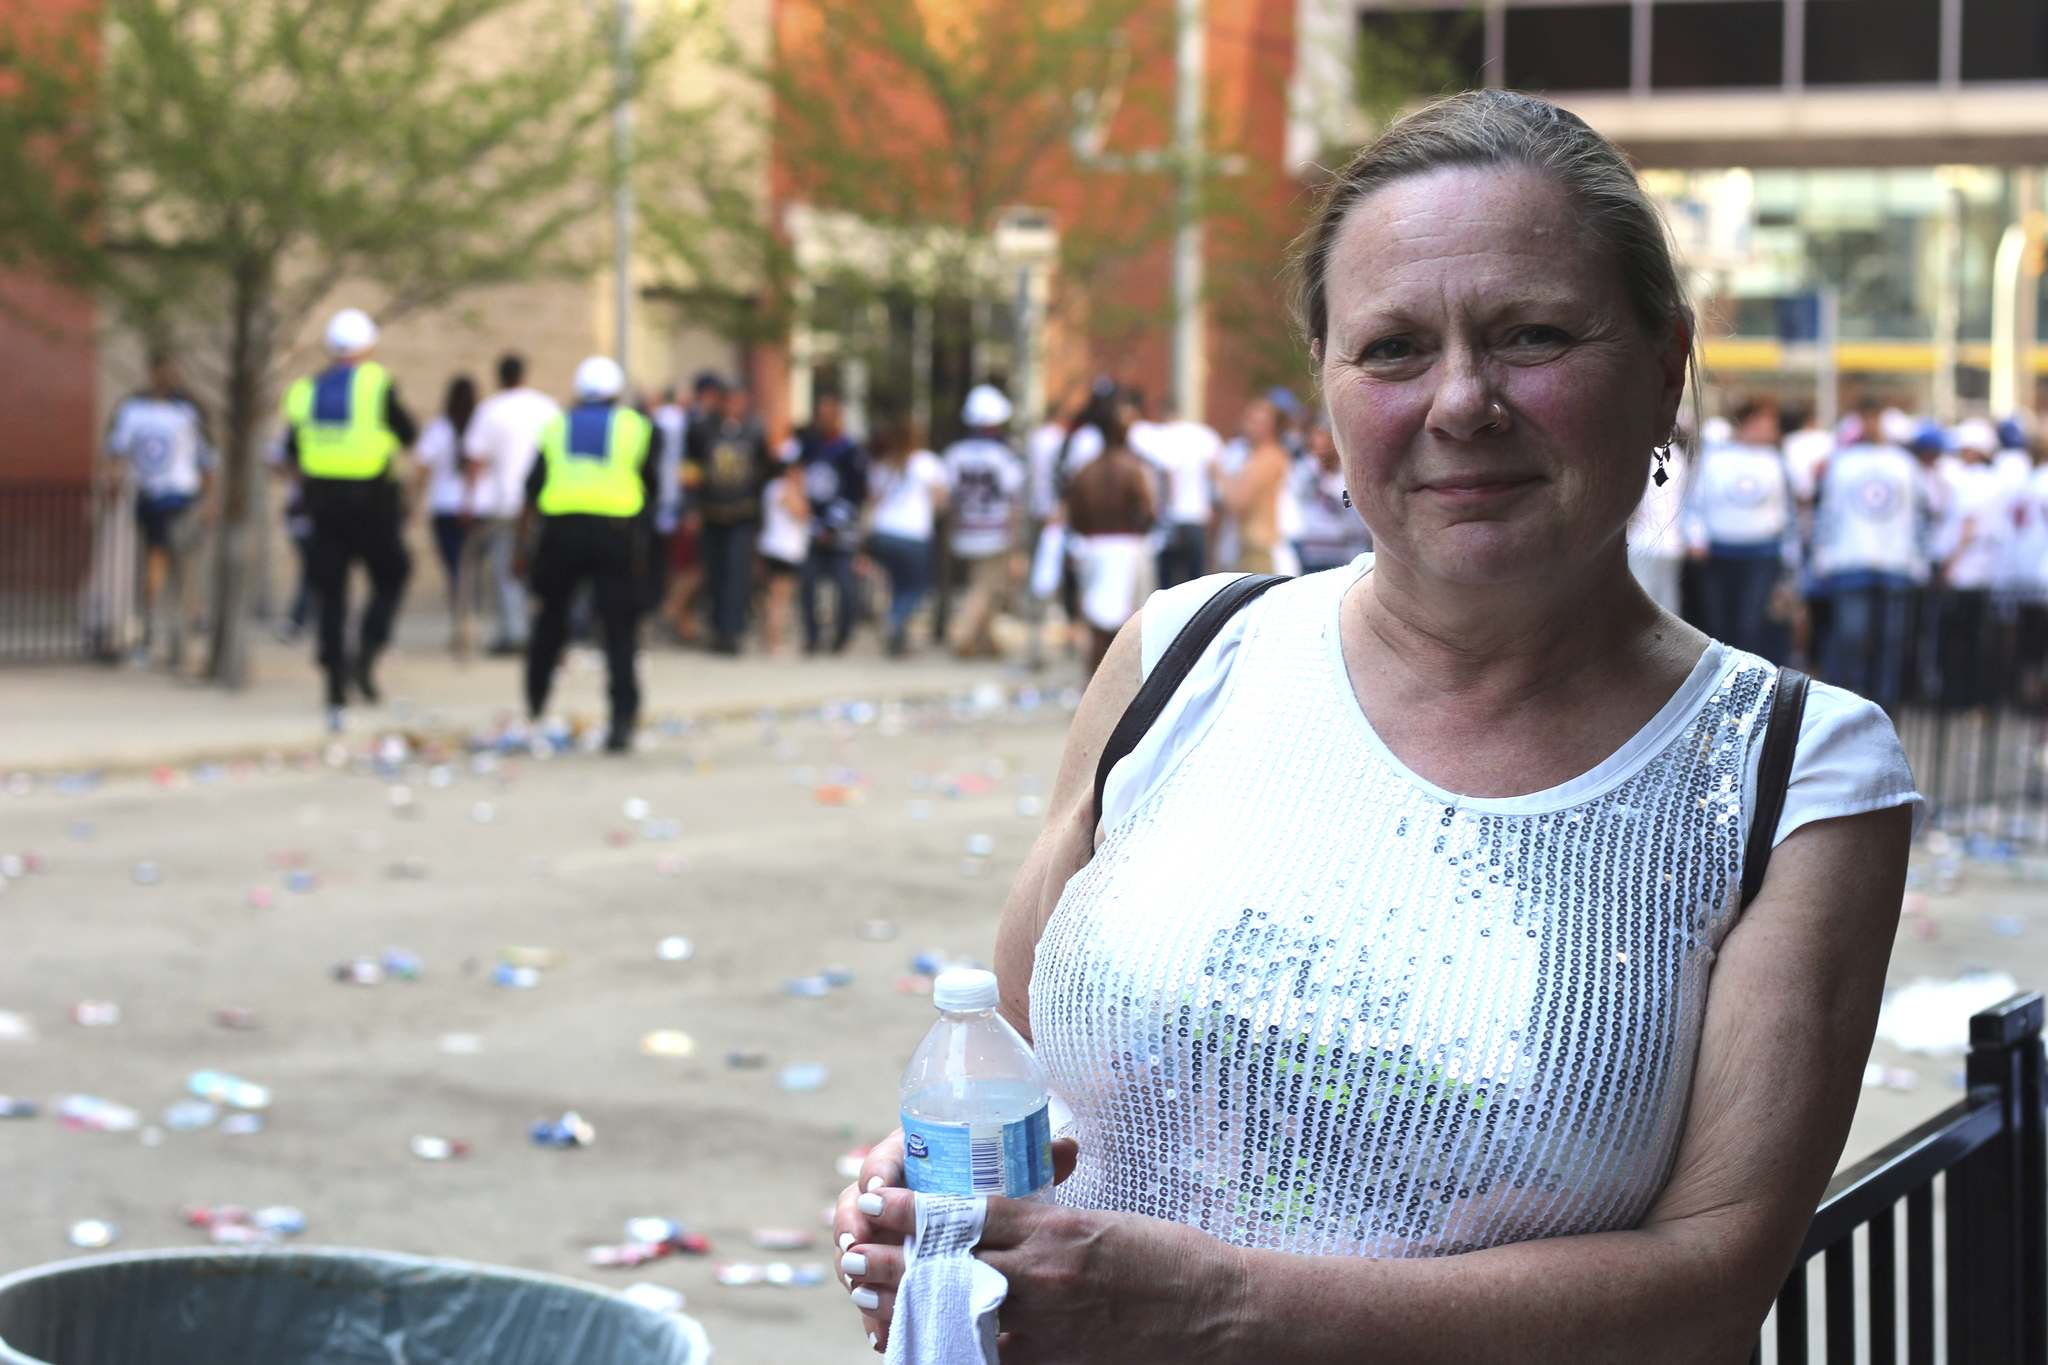 JESSICA BOTELHO-URBANSKI / WINNIPEG FREE PRESS</p><p>Judith Gaminek held back tears at the downtown street party after the Jets lost to the Golden Knights, ending their Stanley Cup dreams for 2018. </p>